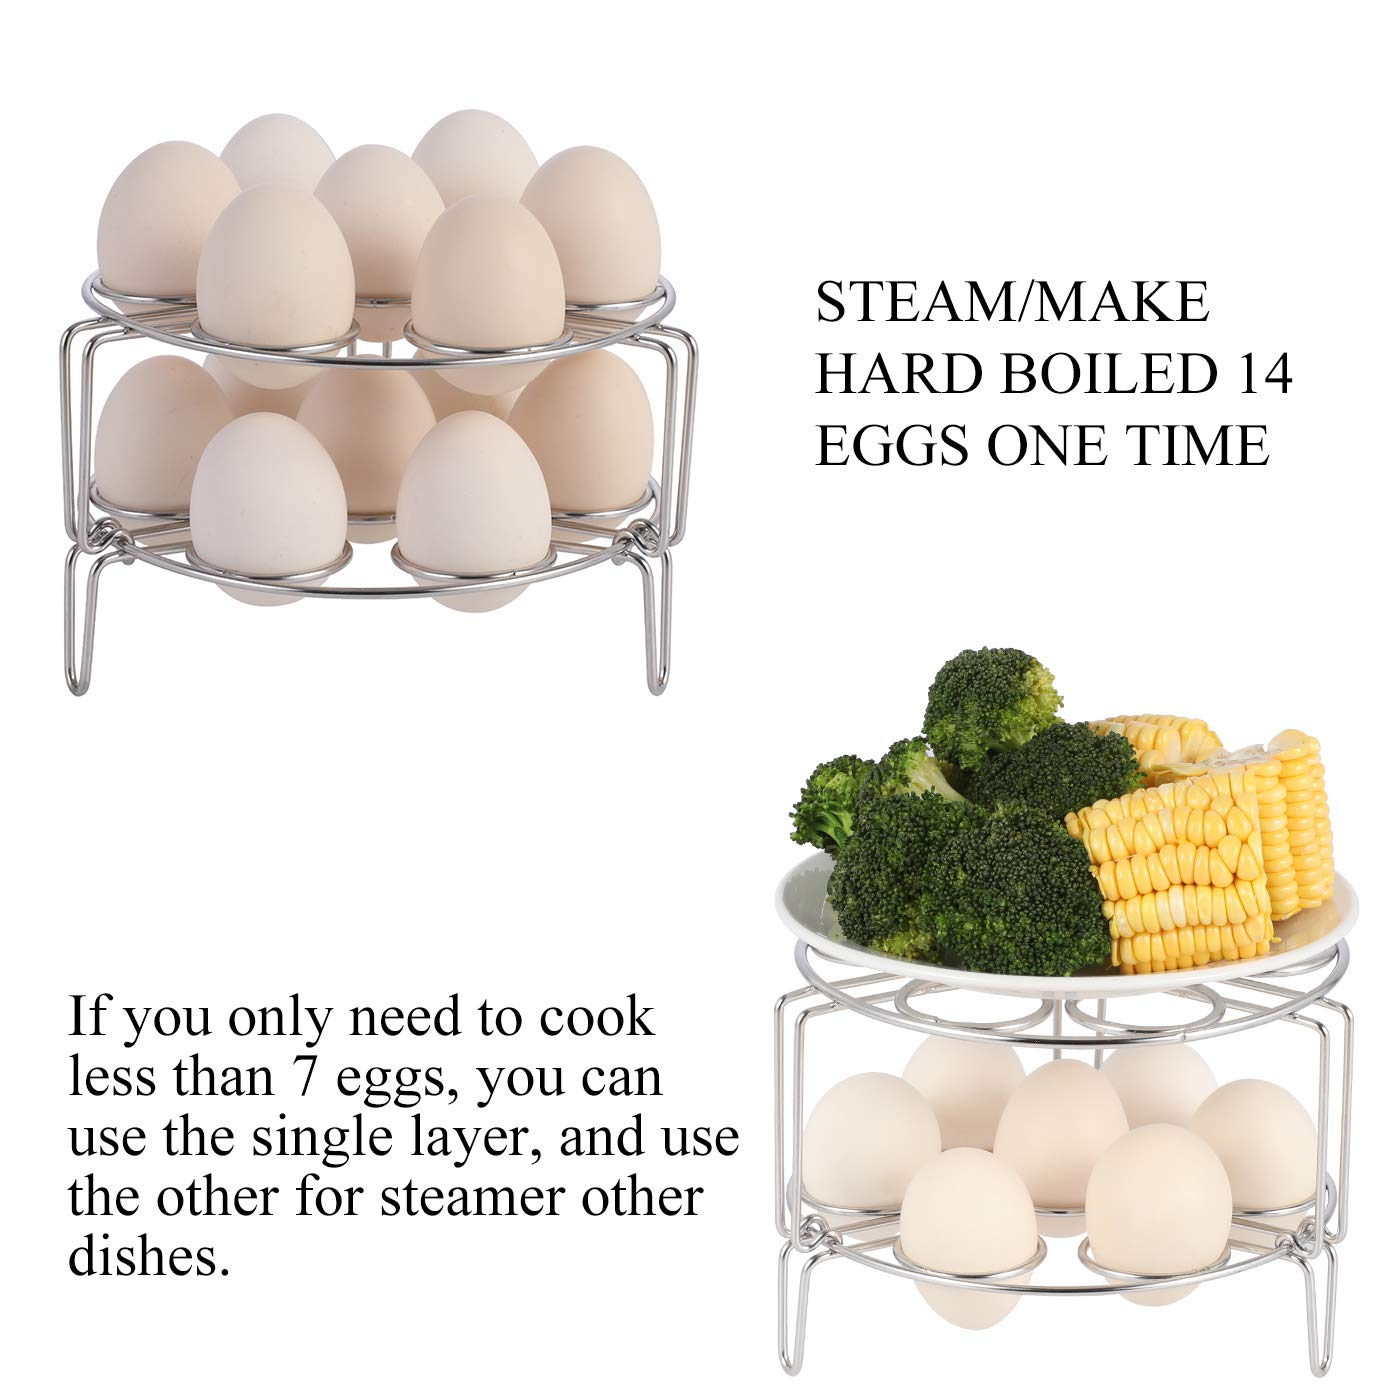 Aozita Stackable Egg Steamer Rack Trivet for Instant Pot Accessories - Fits 5,6,8 qt Pressure Cooker - 2 Pack Stainless Steel Multipurpose Rack by Aozita (Image #3)